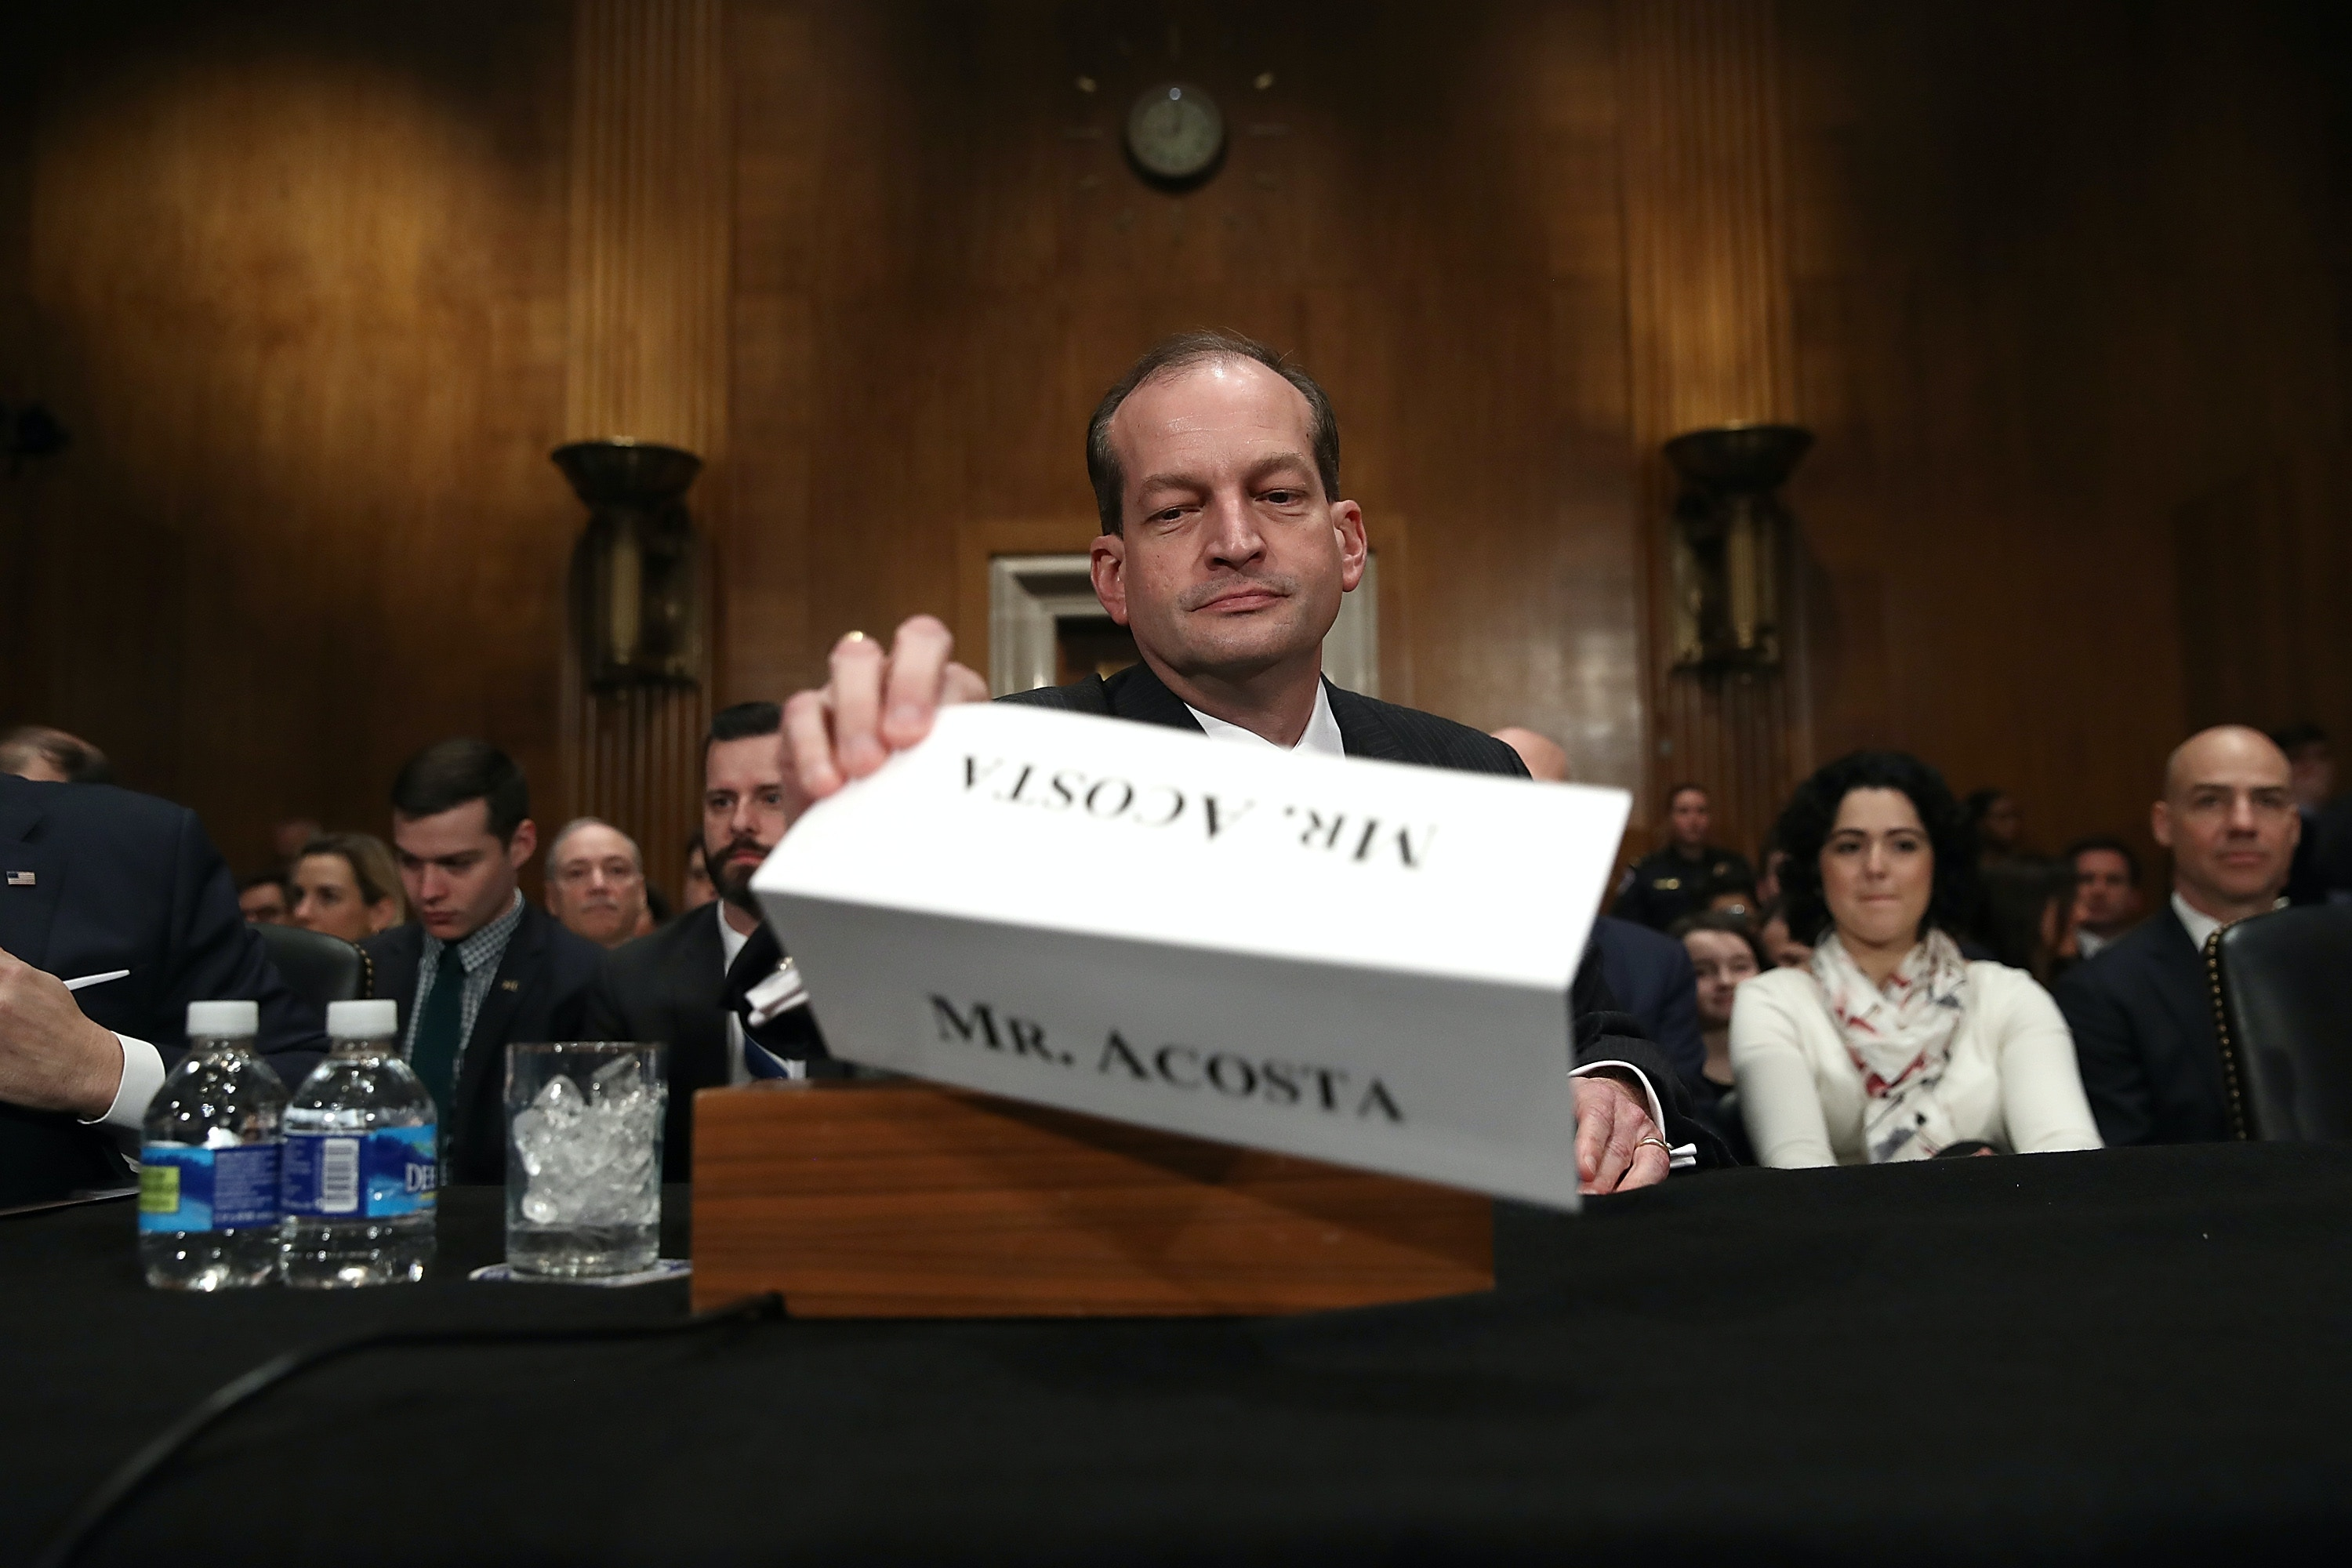 WASHINGTON, DC - MARCH 22:  Labor Secretary nominee Alexander Acosta arrives for testiony before the Senate Health, Education, Labor and Pensions Committee during his confirmation hearing March 22, 2017 in Washington, DC. Acosta was questioned by members of the committee on his opinions relating to overtime rules during the early portion of the hearing.  (Photo by Win McNamee/Getty Images)